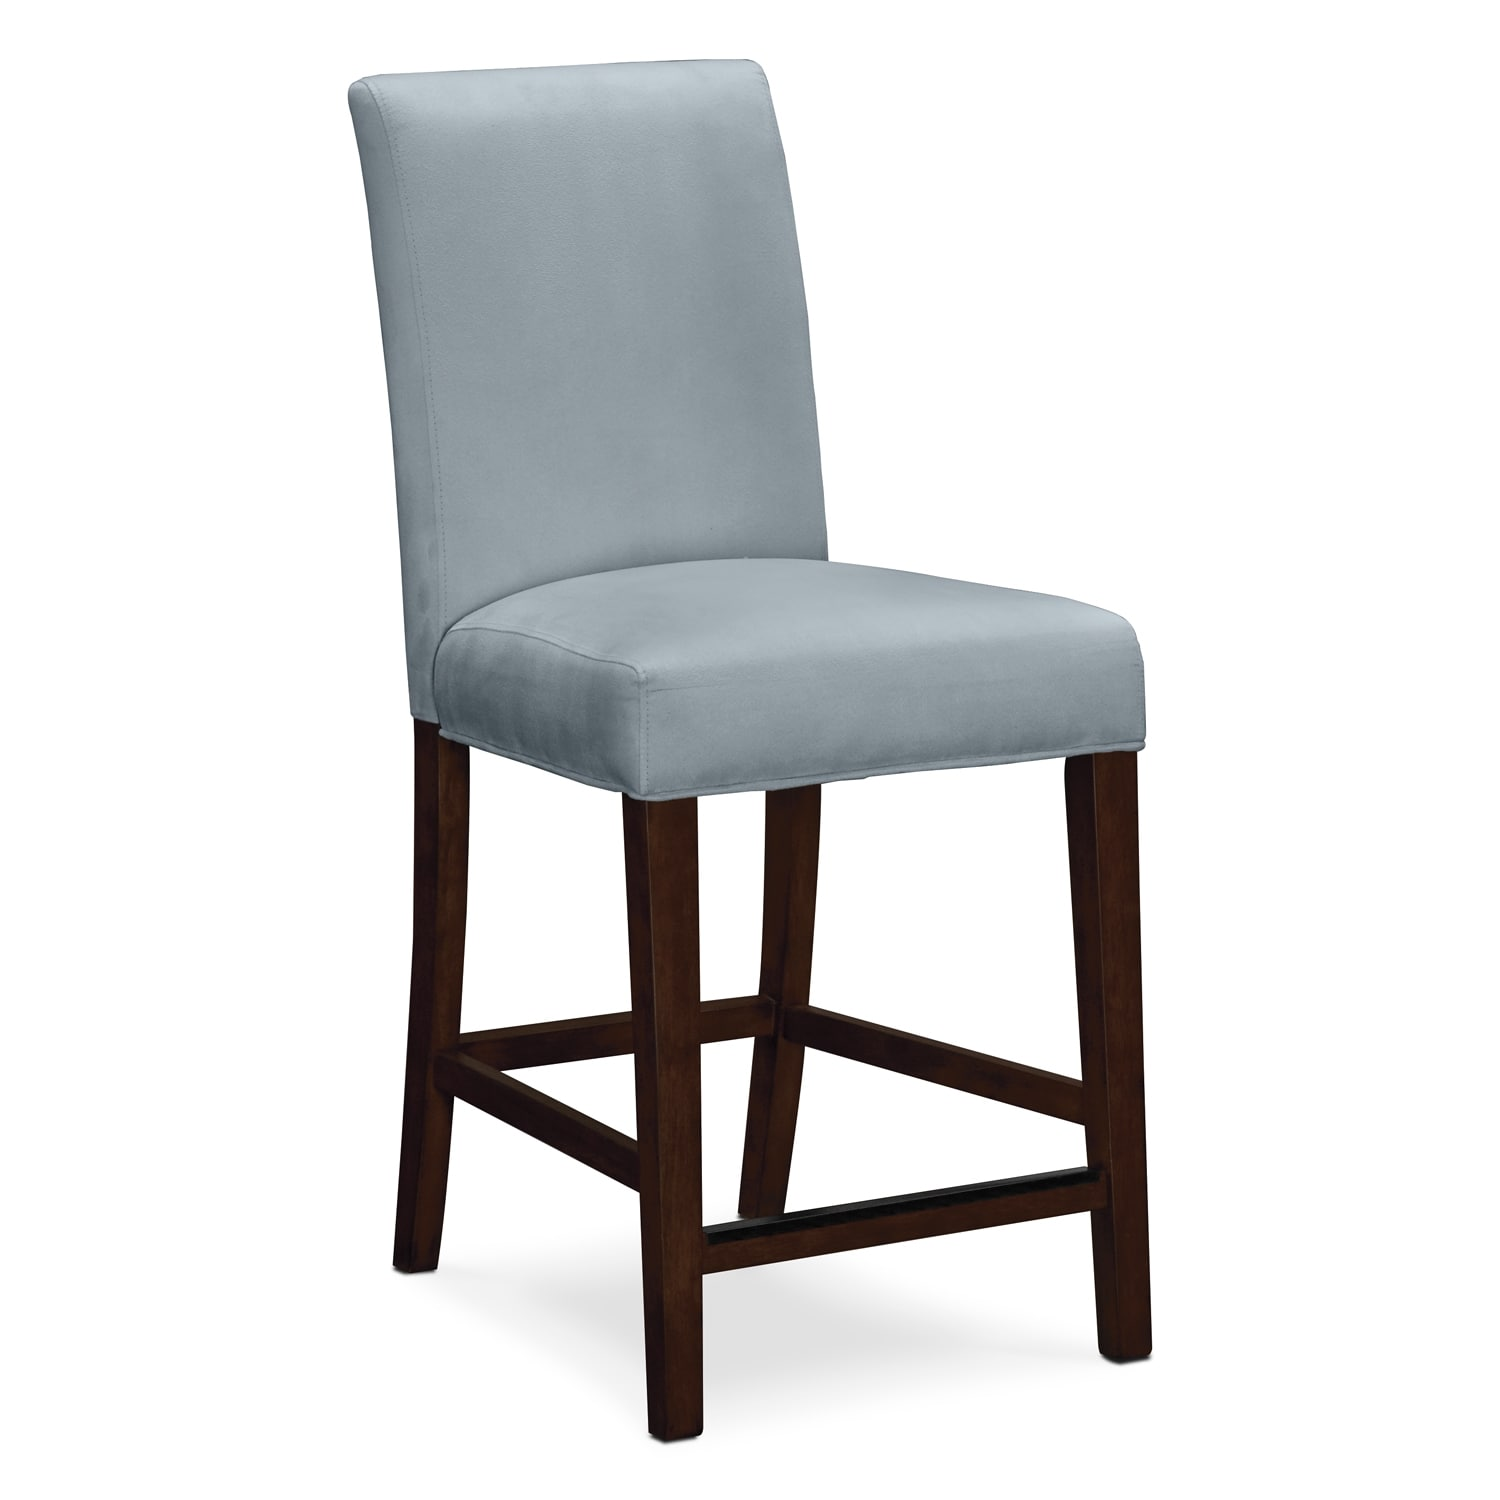 Alcove Counter-Height Stool - Aqua | American Signature